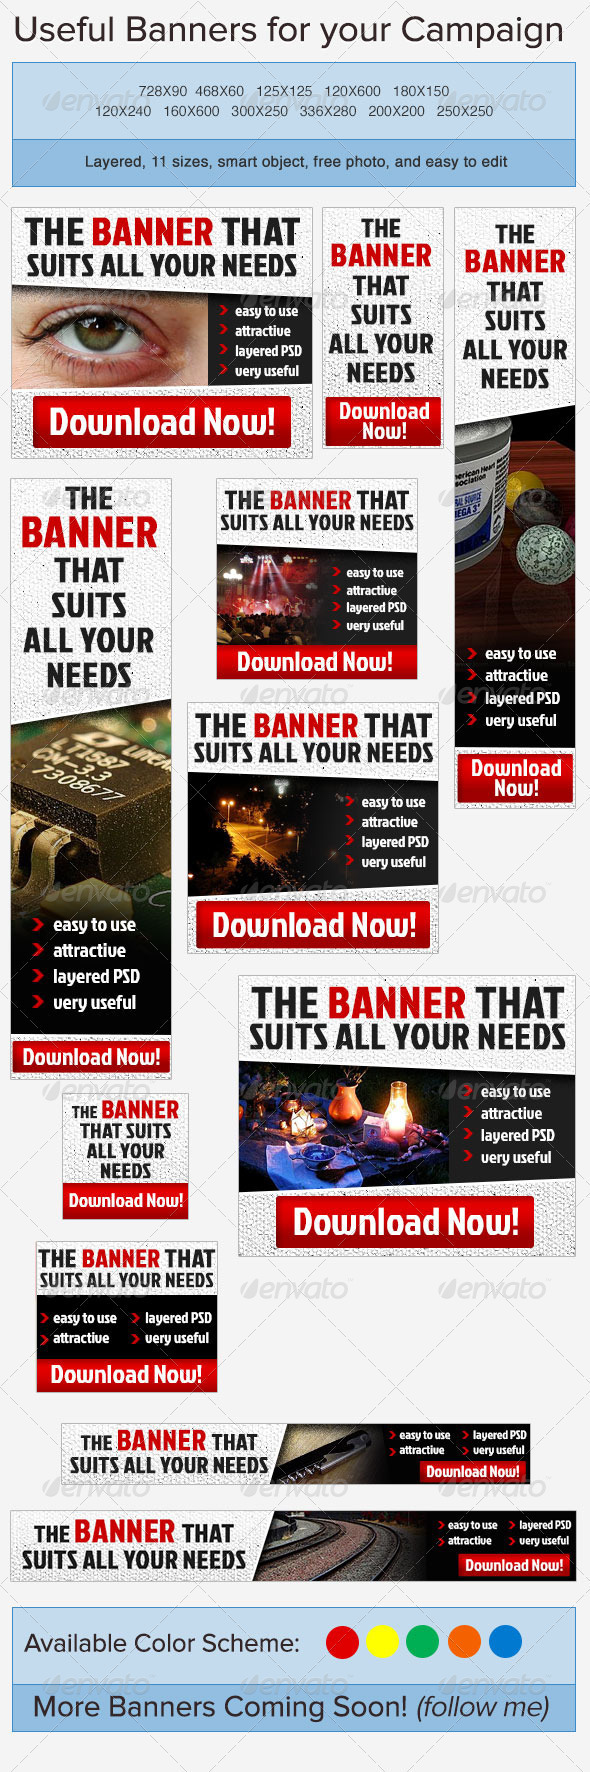 Standard Banner Ad - Banners & Ads Web Elements